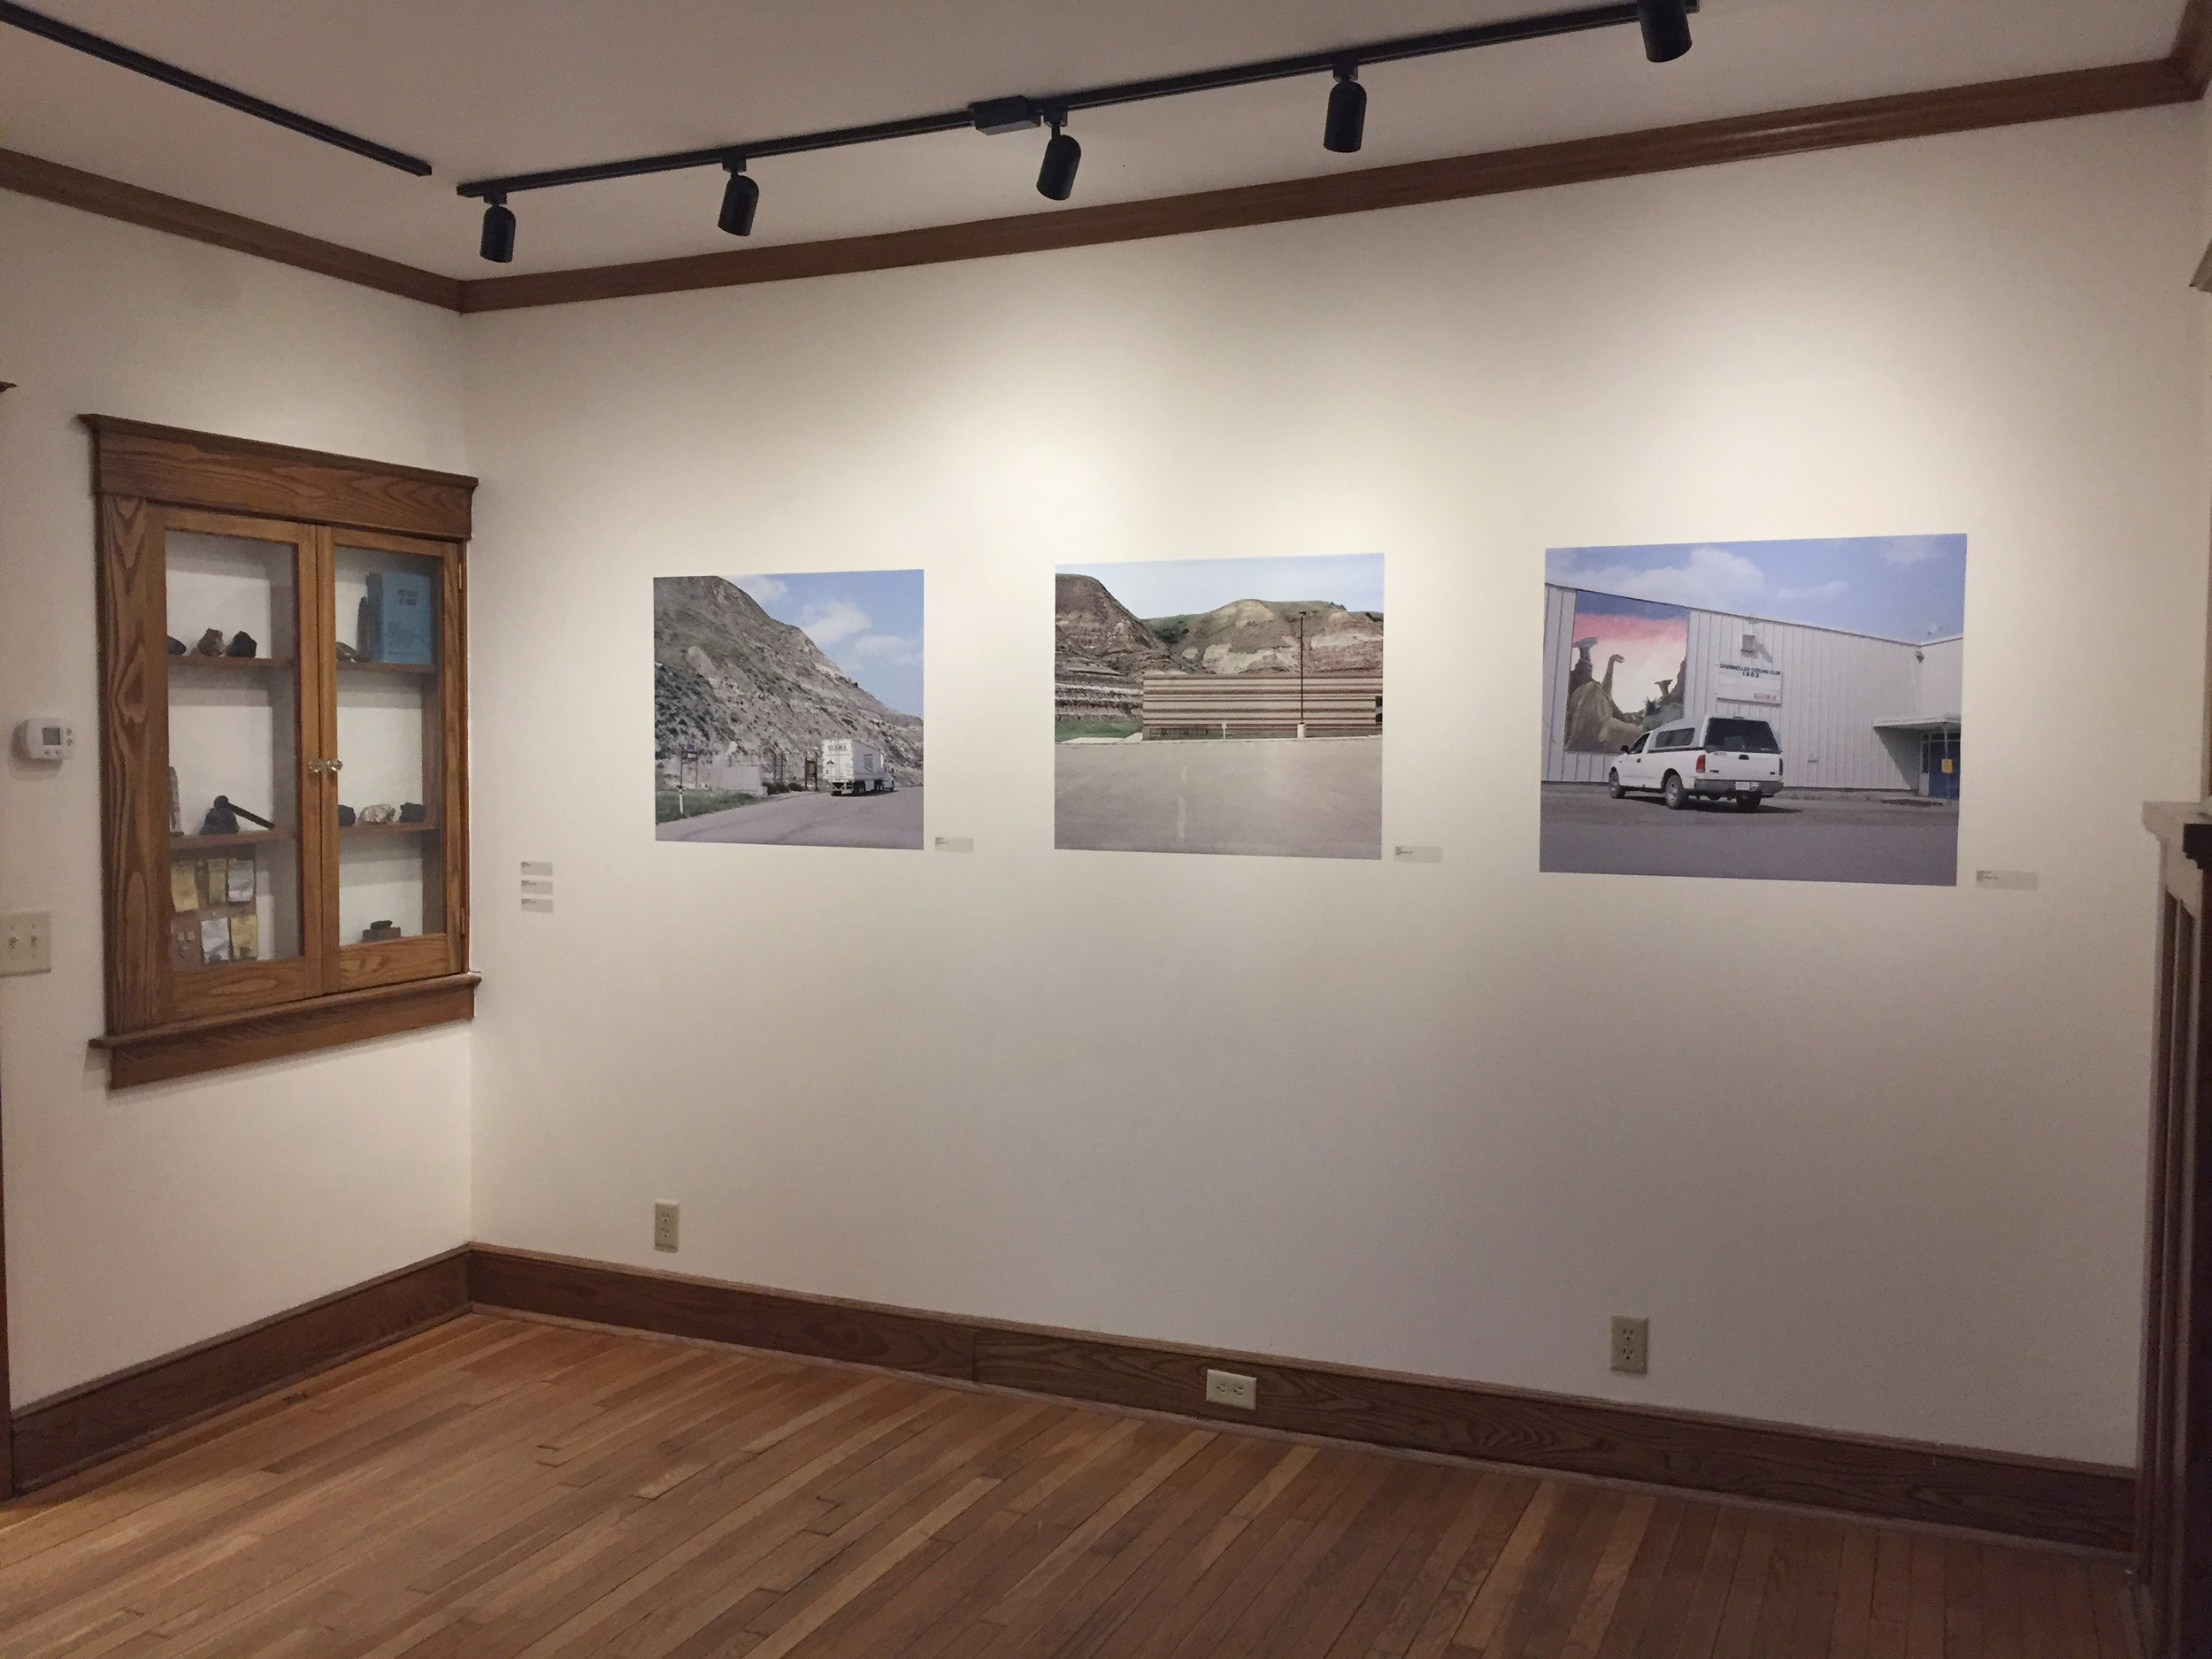 Exhibition image at the Bundy Museum